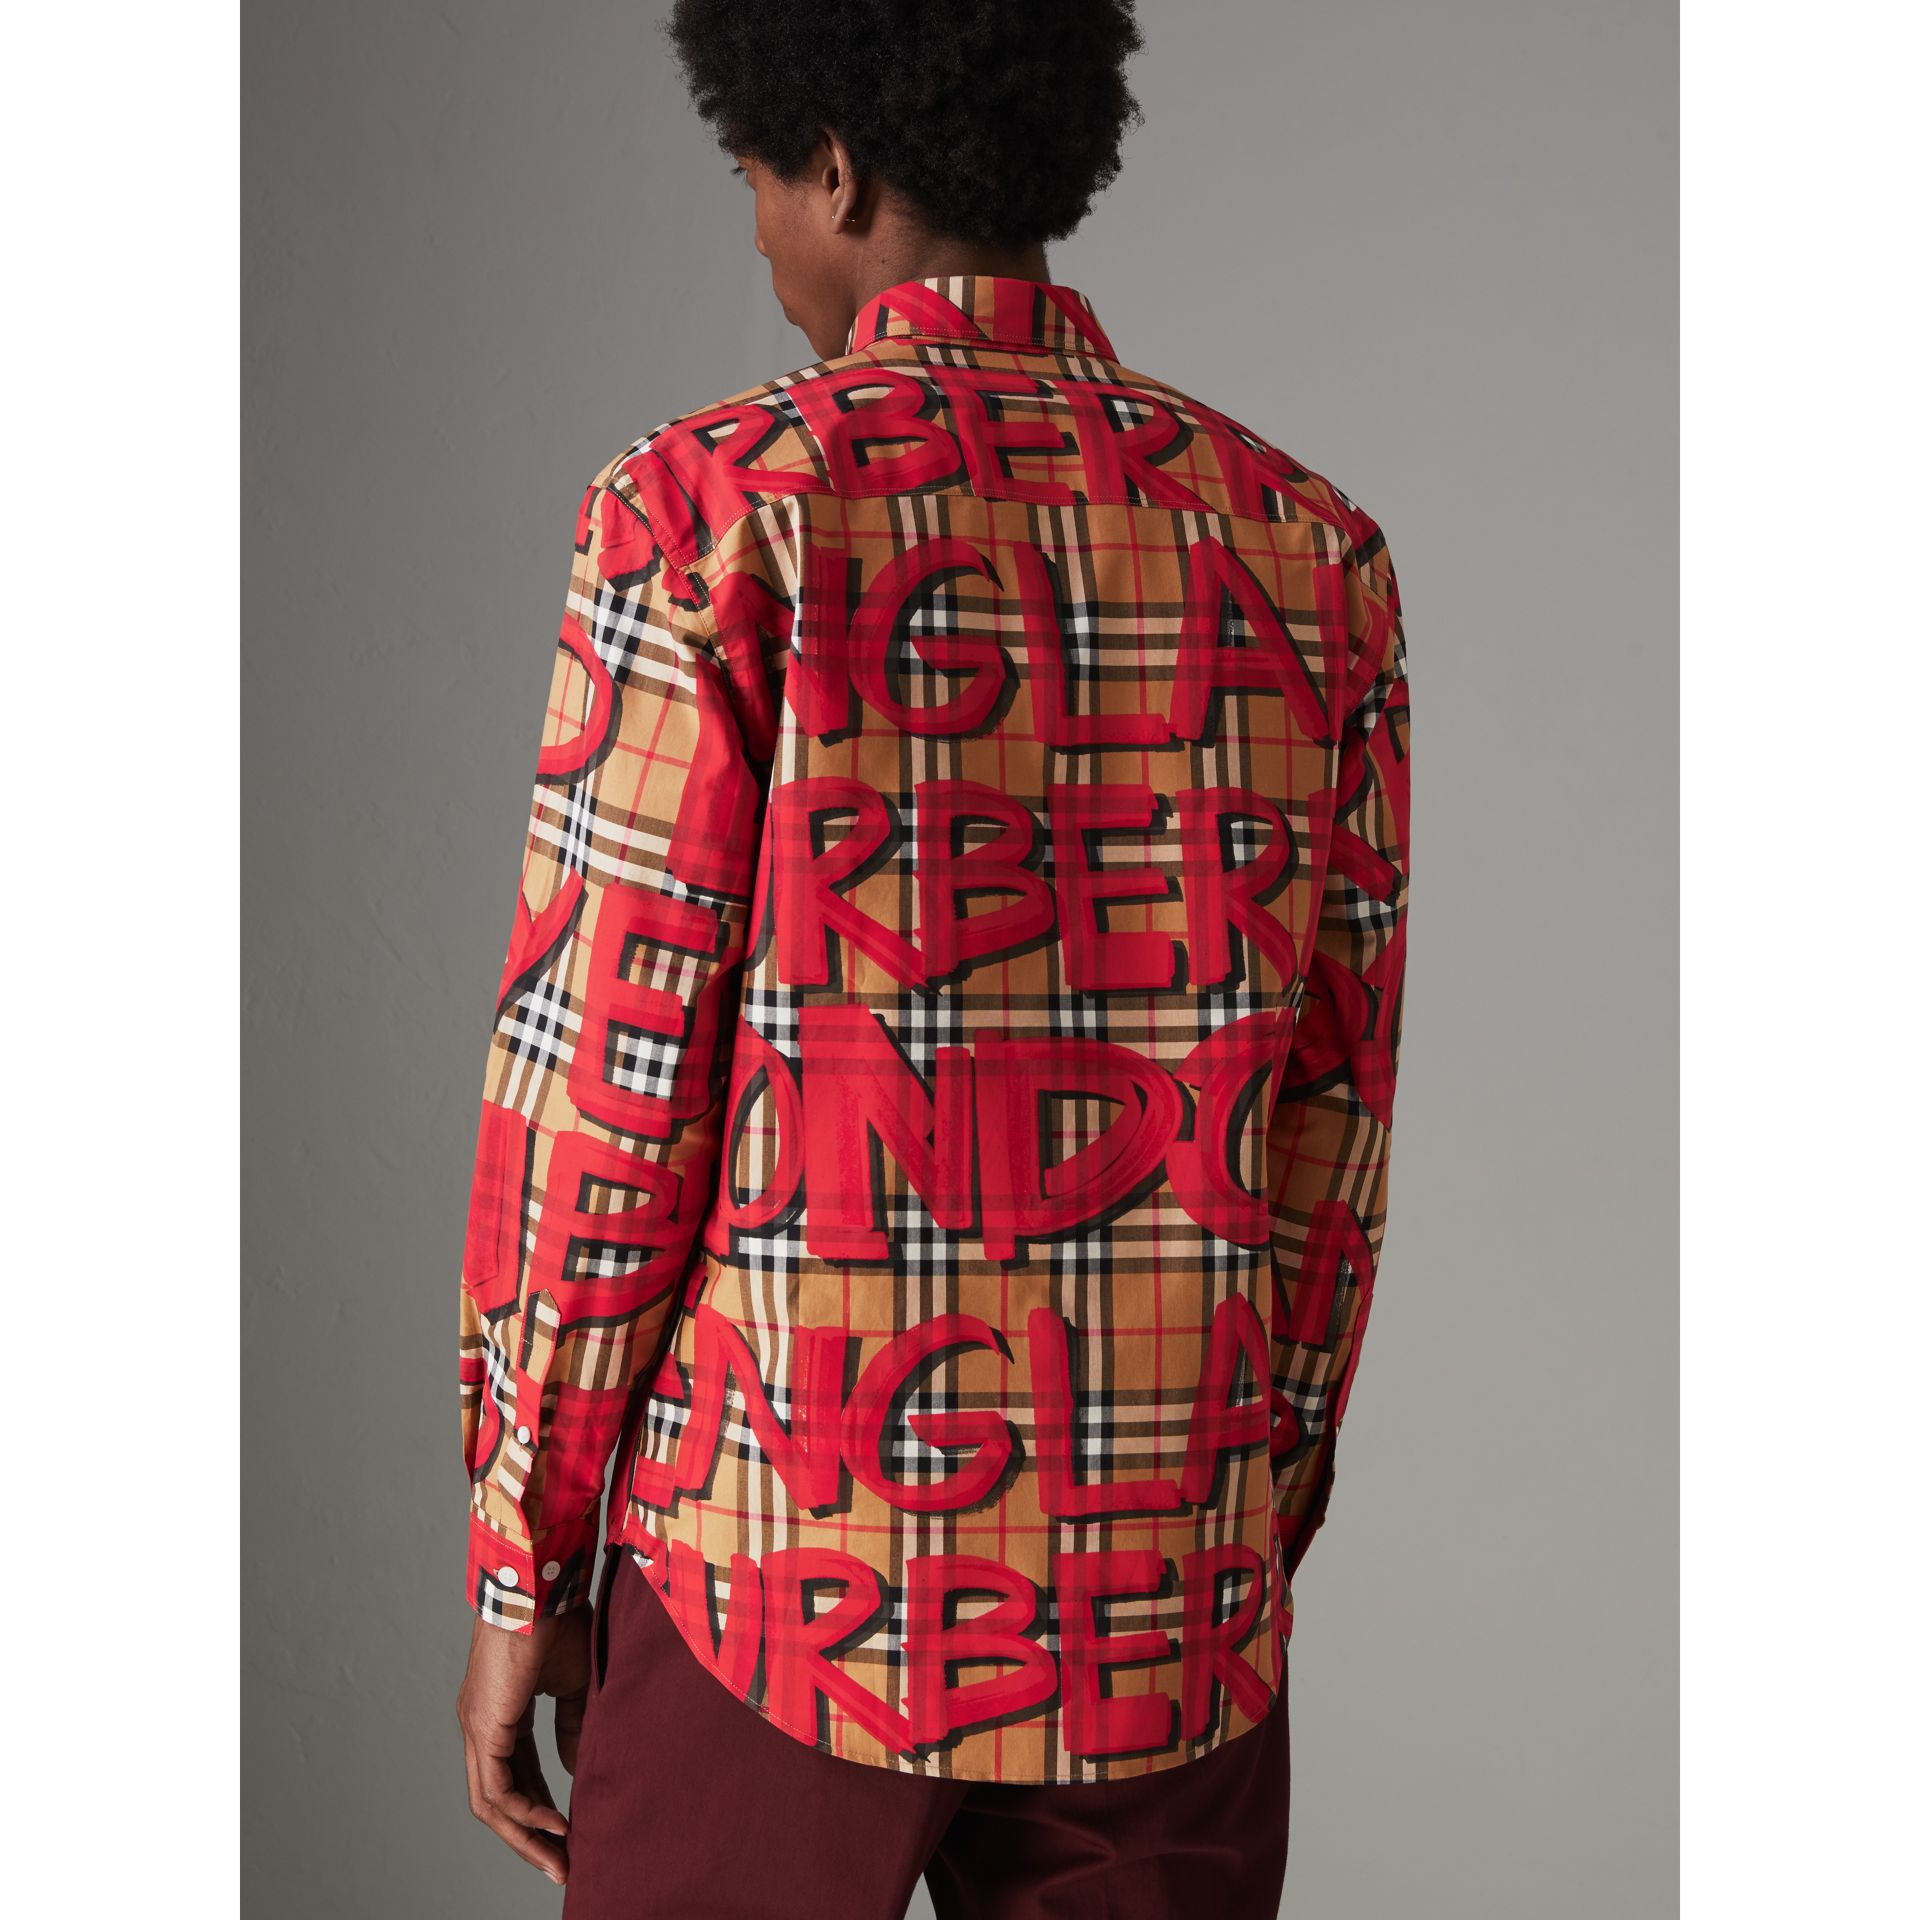 Graffiti Print Vintage Check Shirt in Bright Red - Men | Burberry - gallery image 2